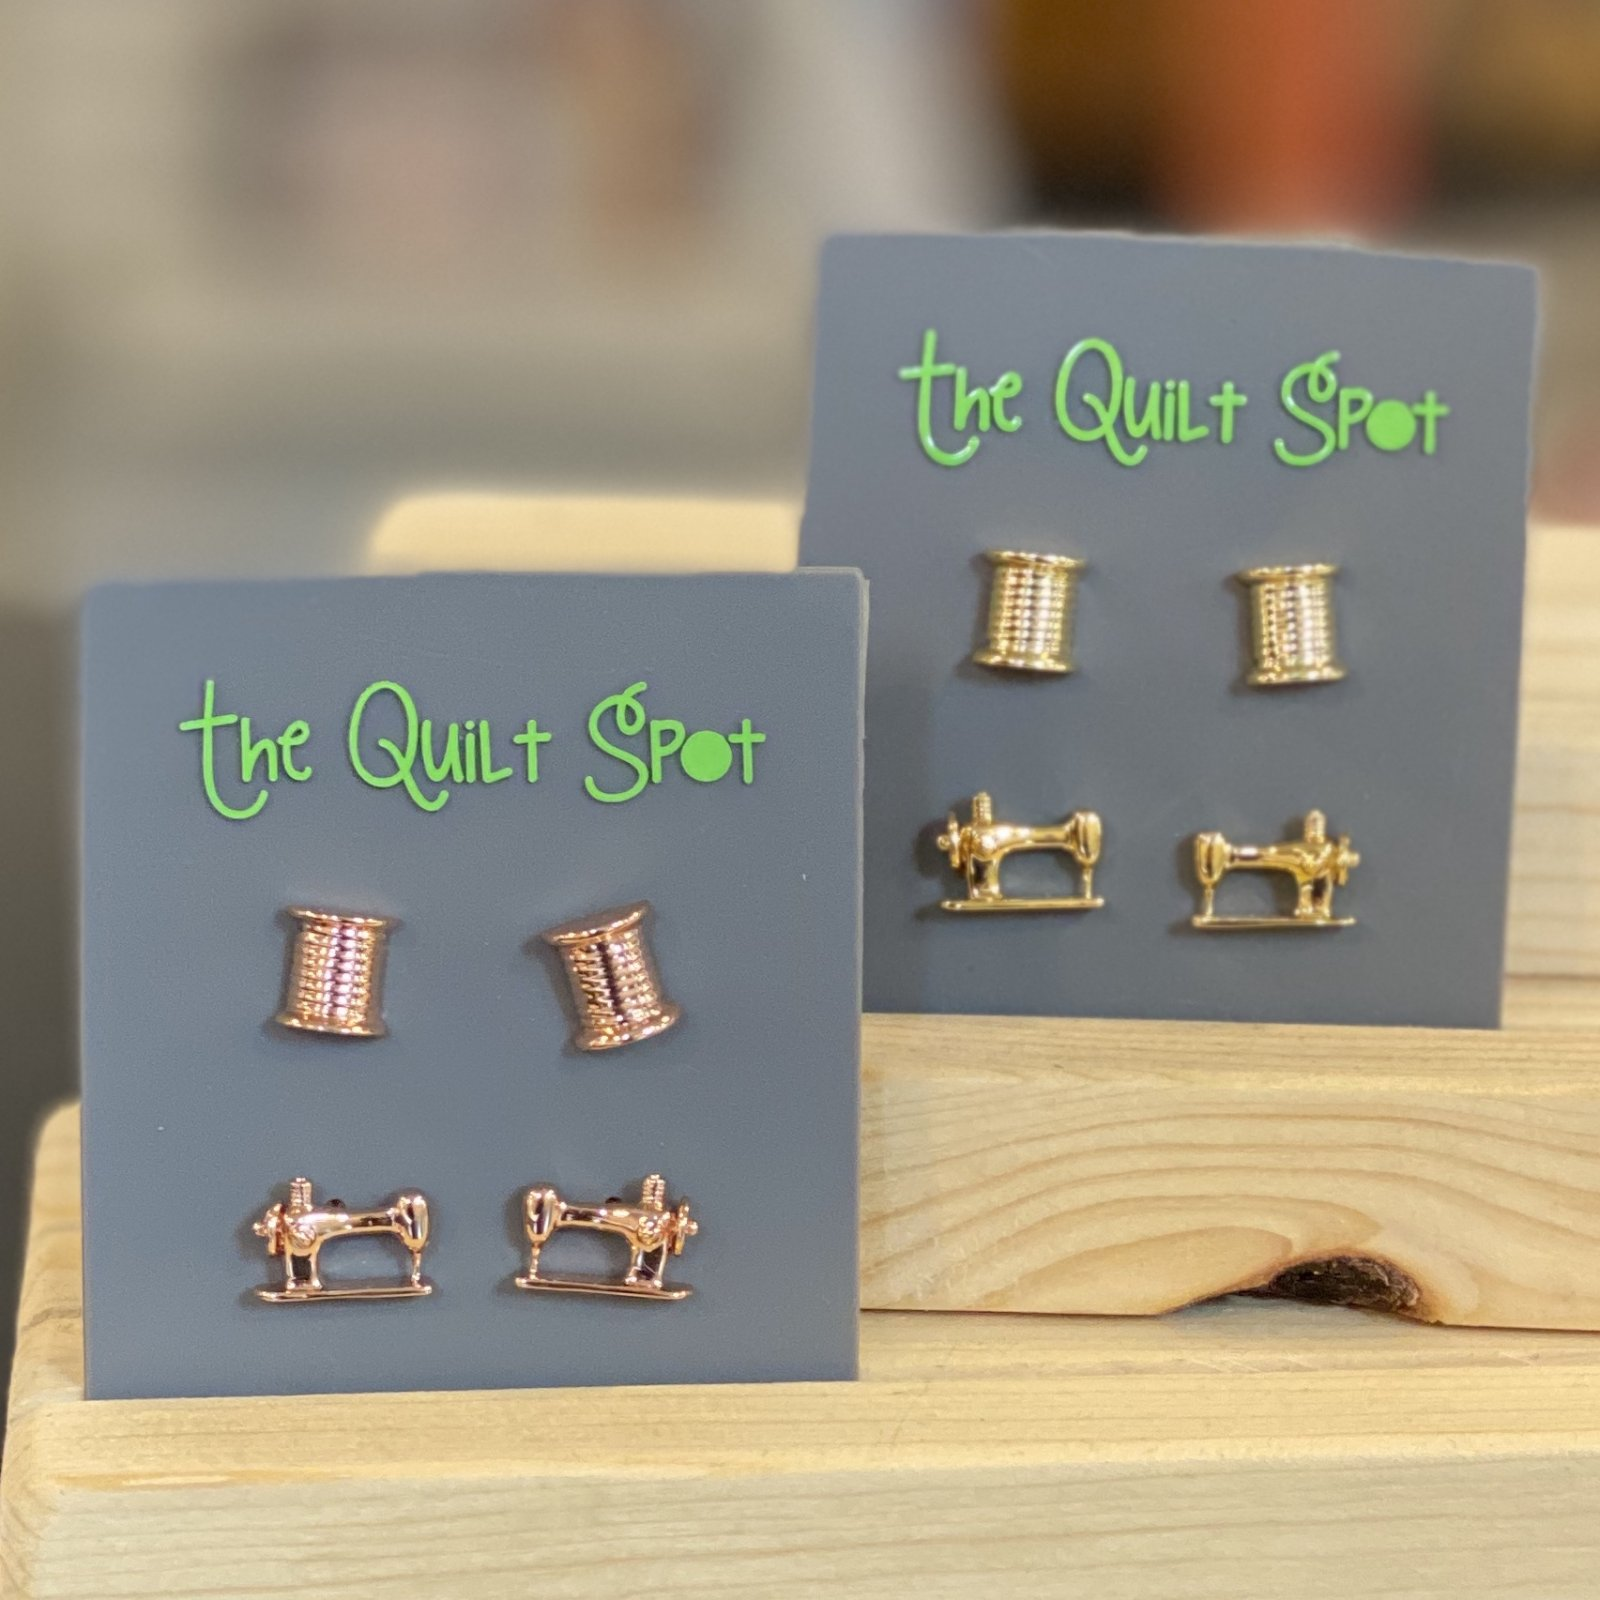 Sewing Machine & Spool Earrings from The Quilt Spot